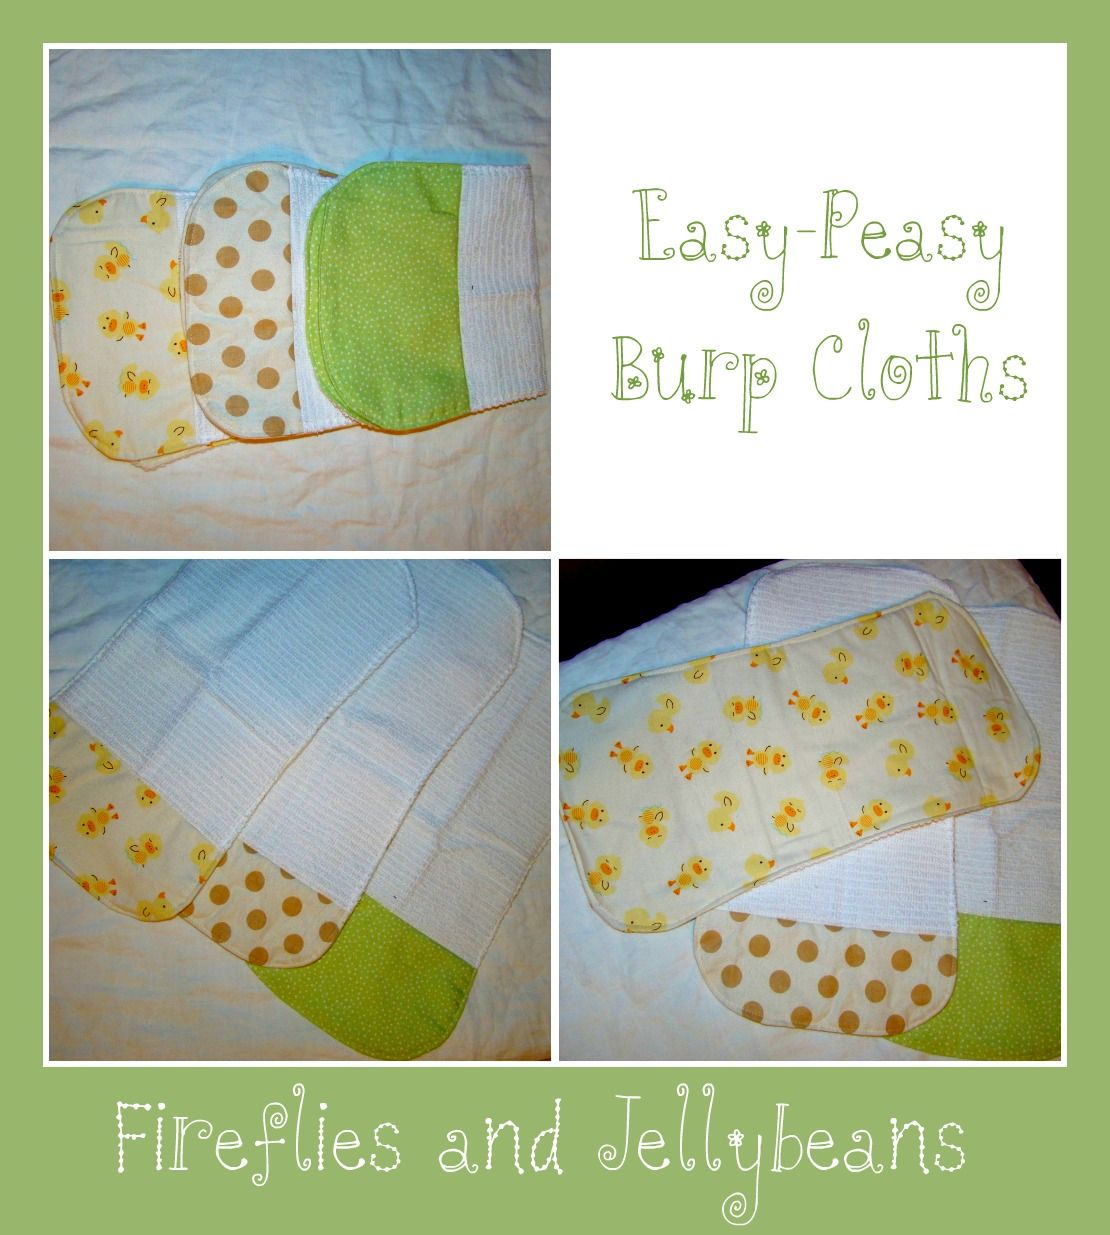 Easy-Peasy Burp Clothes! A great baby gift!